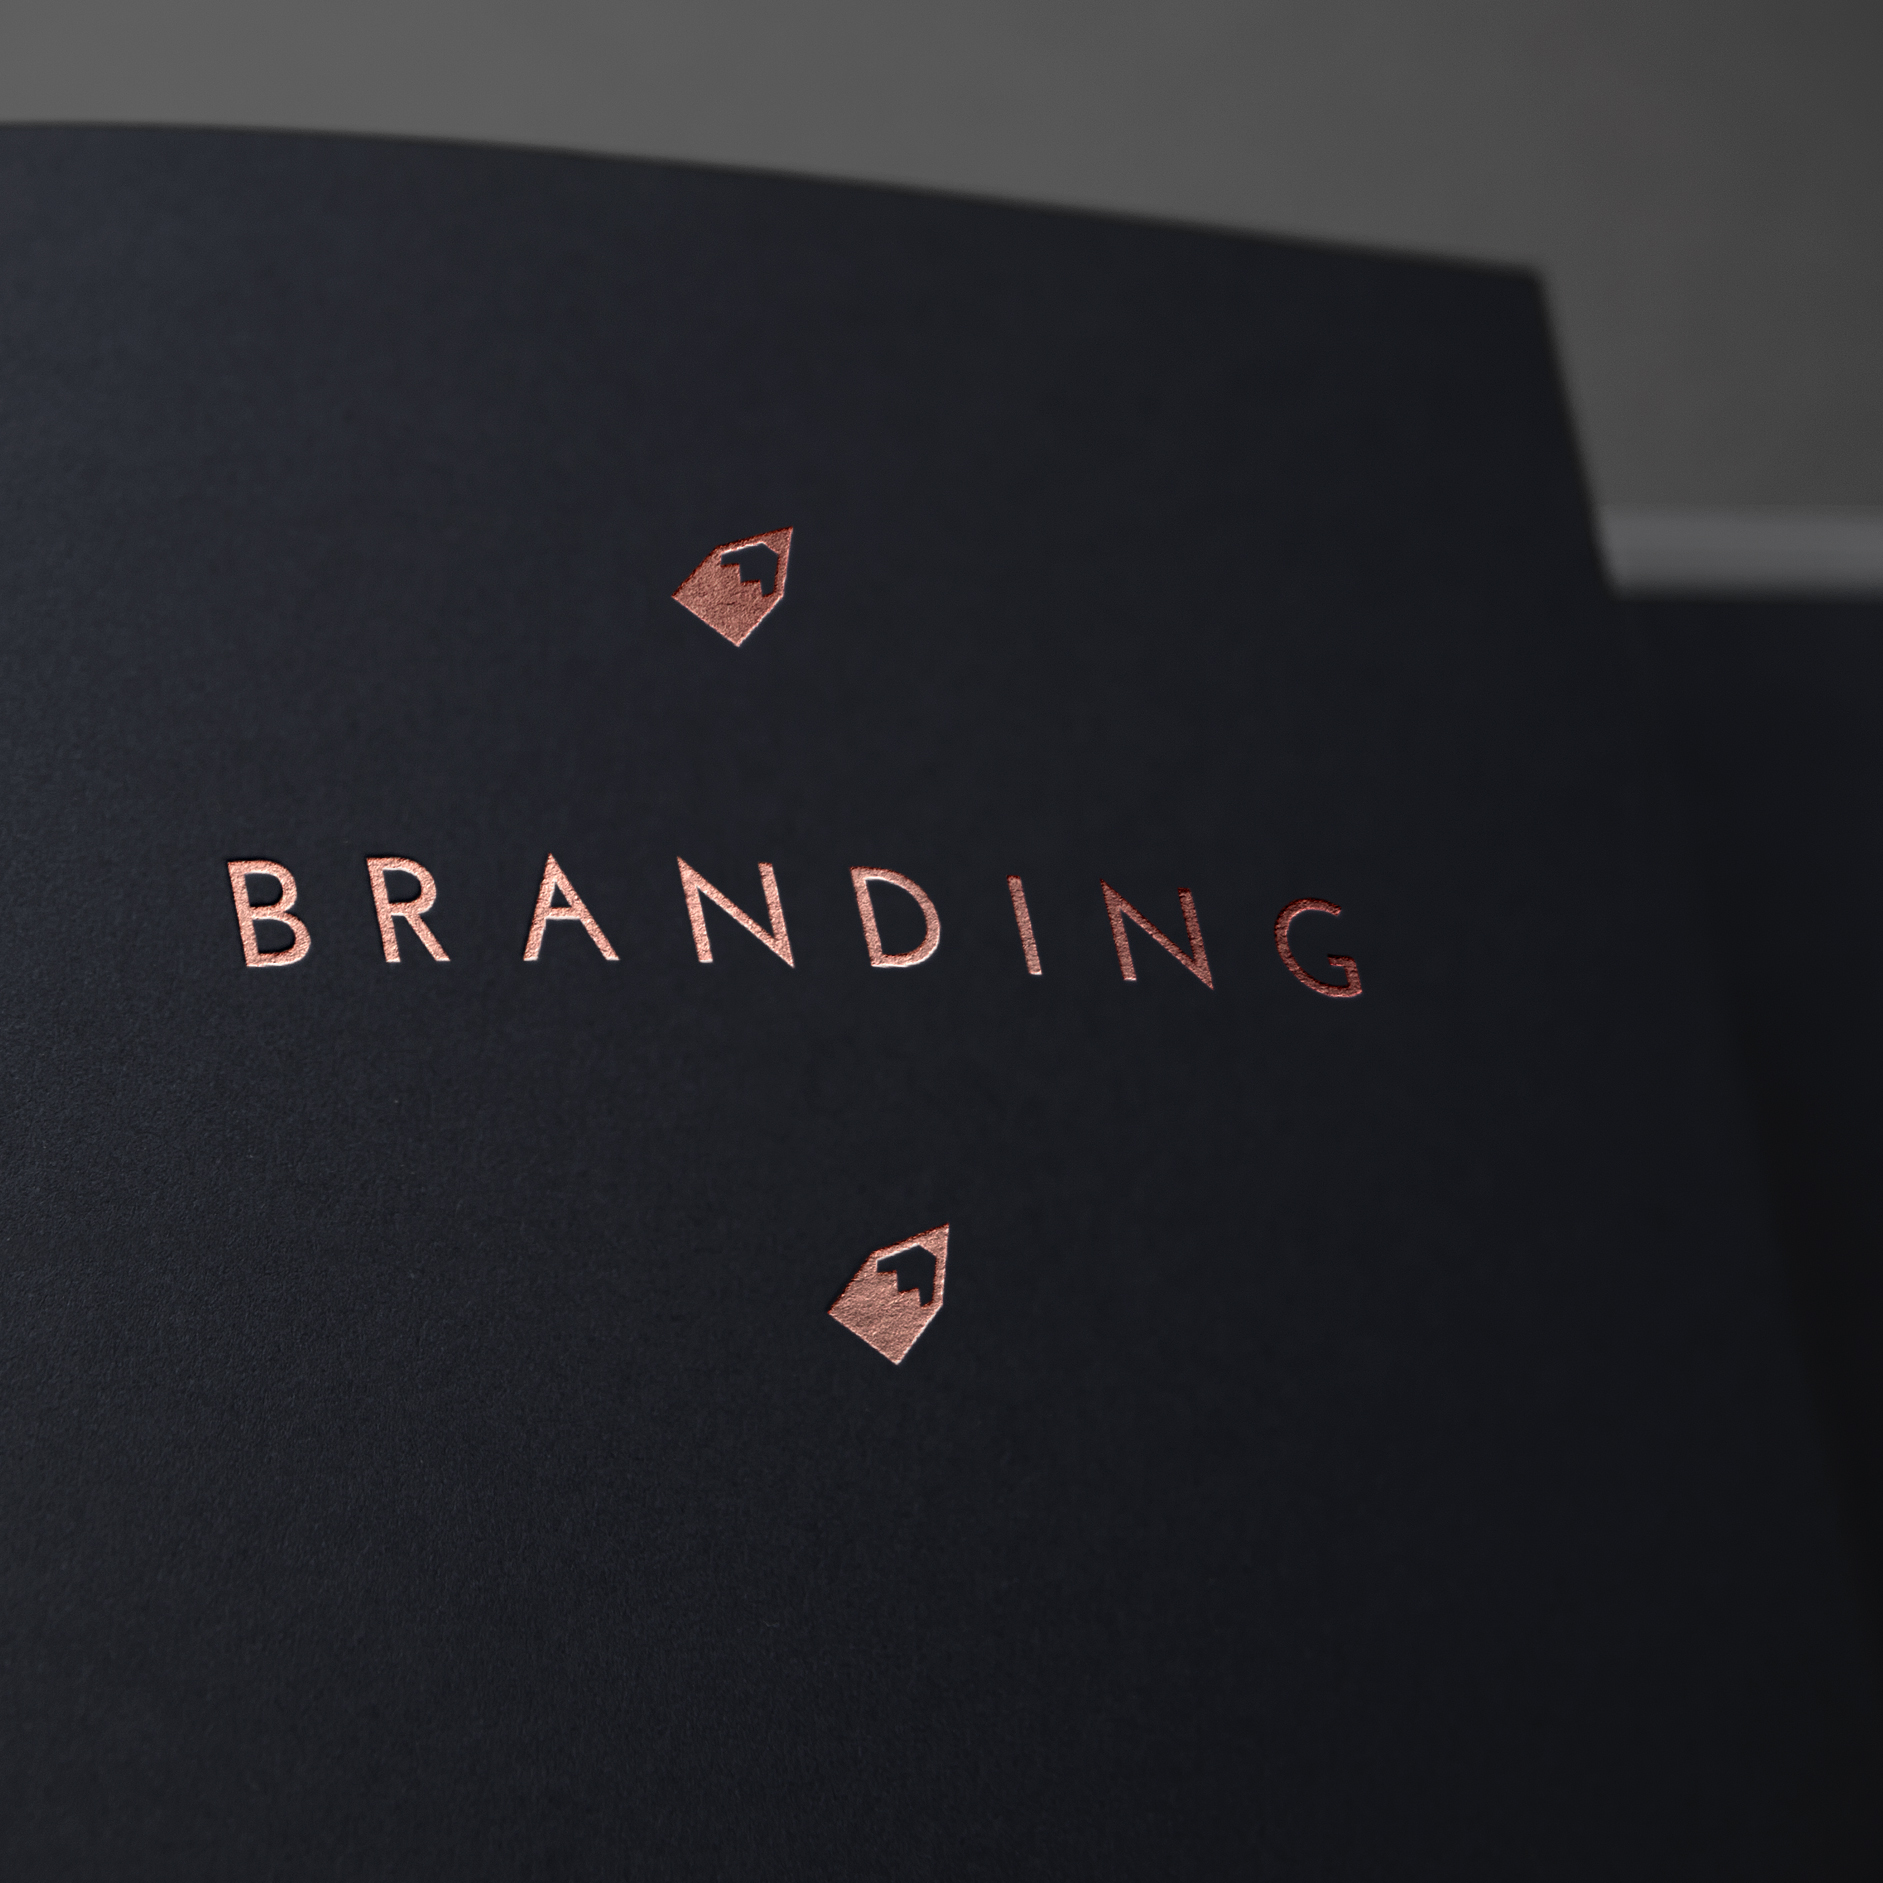 Branding is a way of identifying your business in an often busy marketplace. It is how your customers recognise, experience and remember your business. A strong brand is more than just a logo – it's reflected in everything from your company values, customer service style, staff uniforms, business cards, corporate stationery and premises, to your marketing materials, social media experience and advertising.